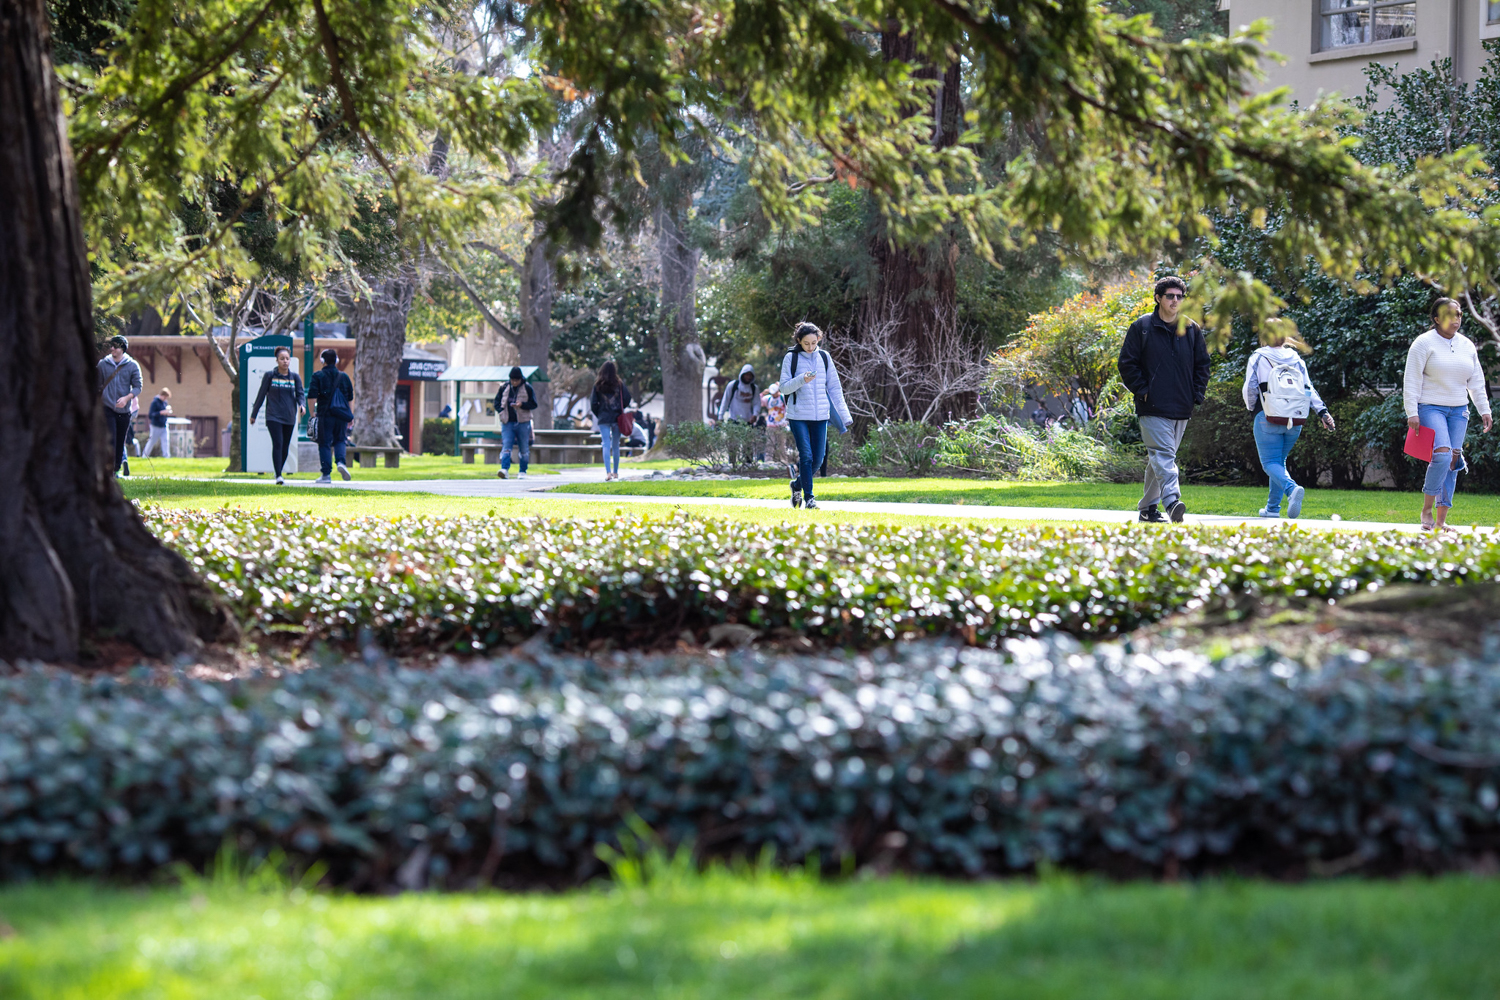 A new plan, months in the developing, is meant to make antiracism sentiments a reality at Sacramento State.